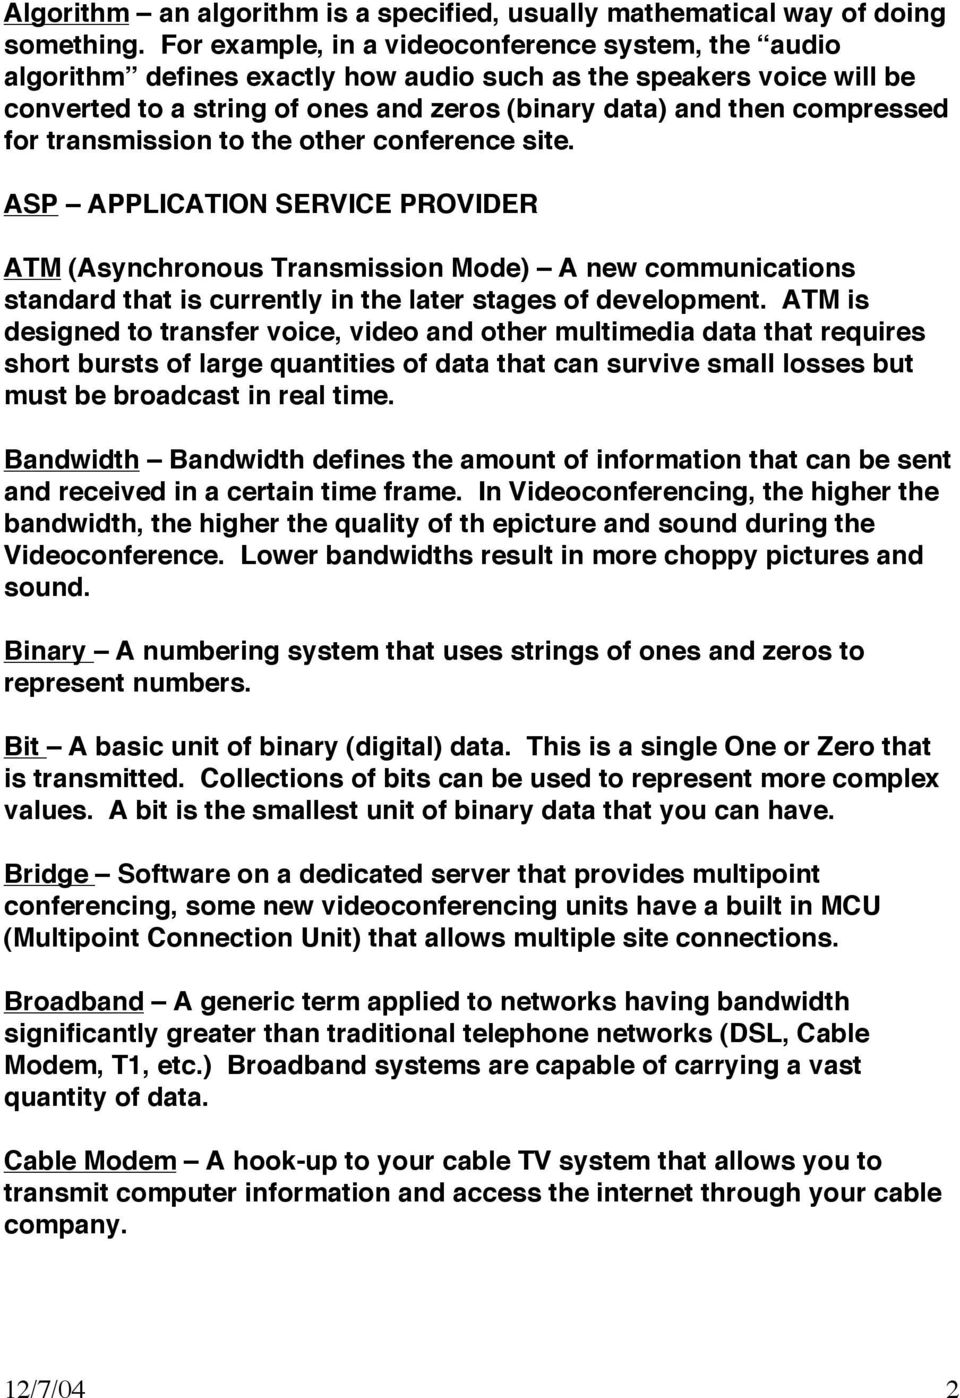 for transmission to the other conference site. ASP APPLICATION SERVICE PROVIDER ATM (Asynchronous Transmission Mode) A new communications standard that is currently in the later stages of development.